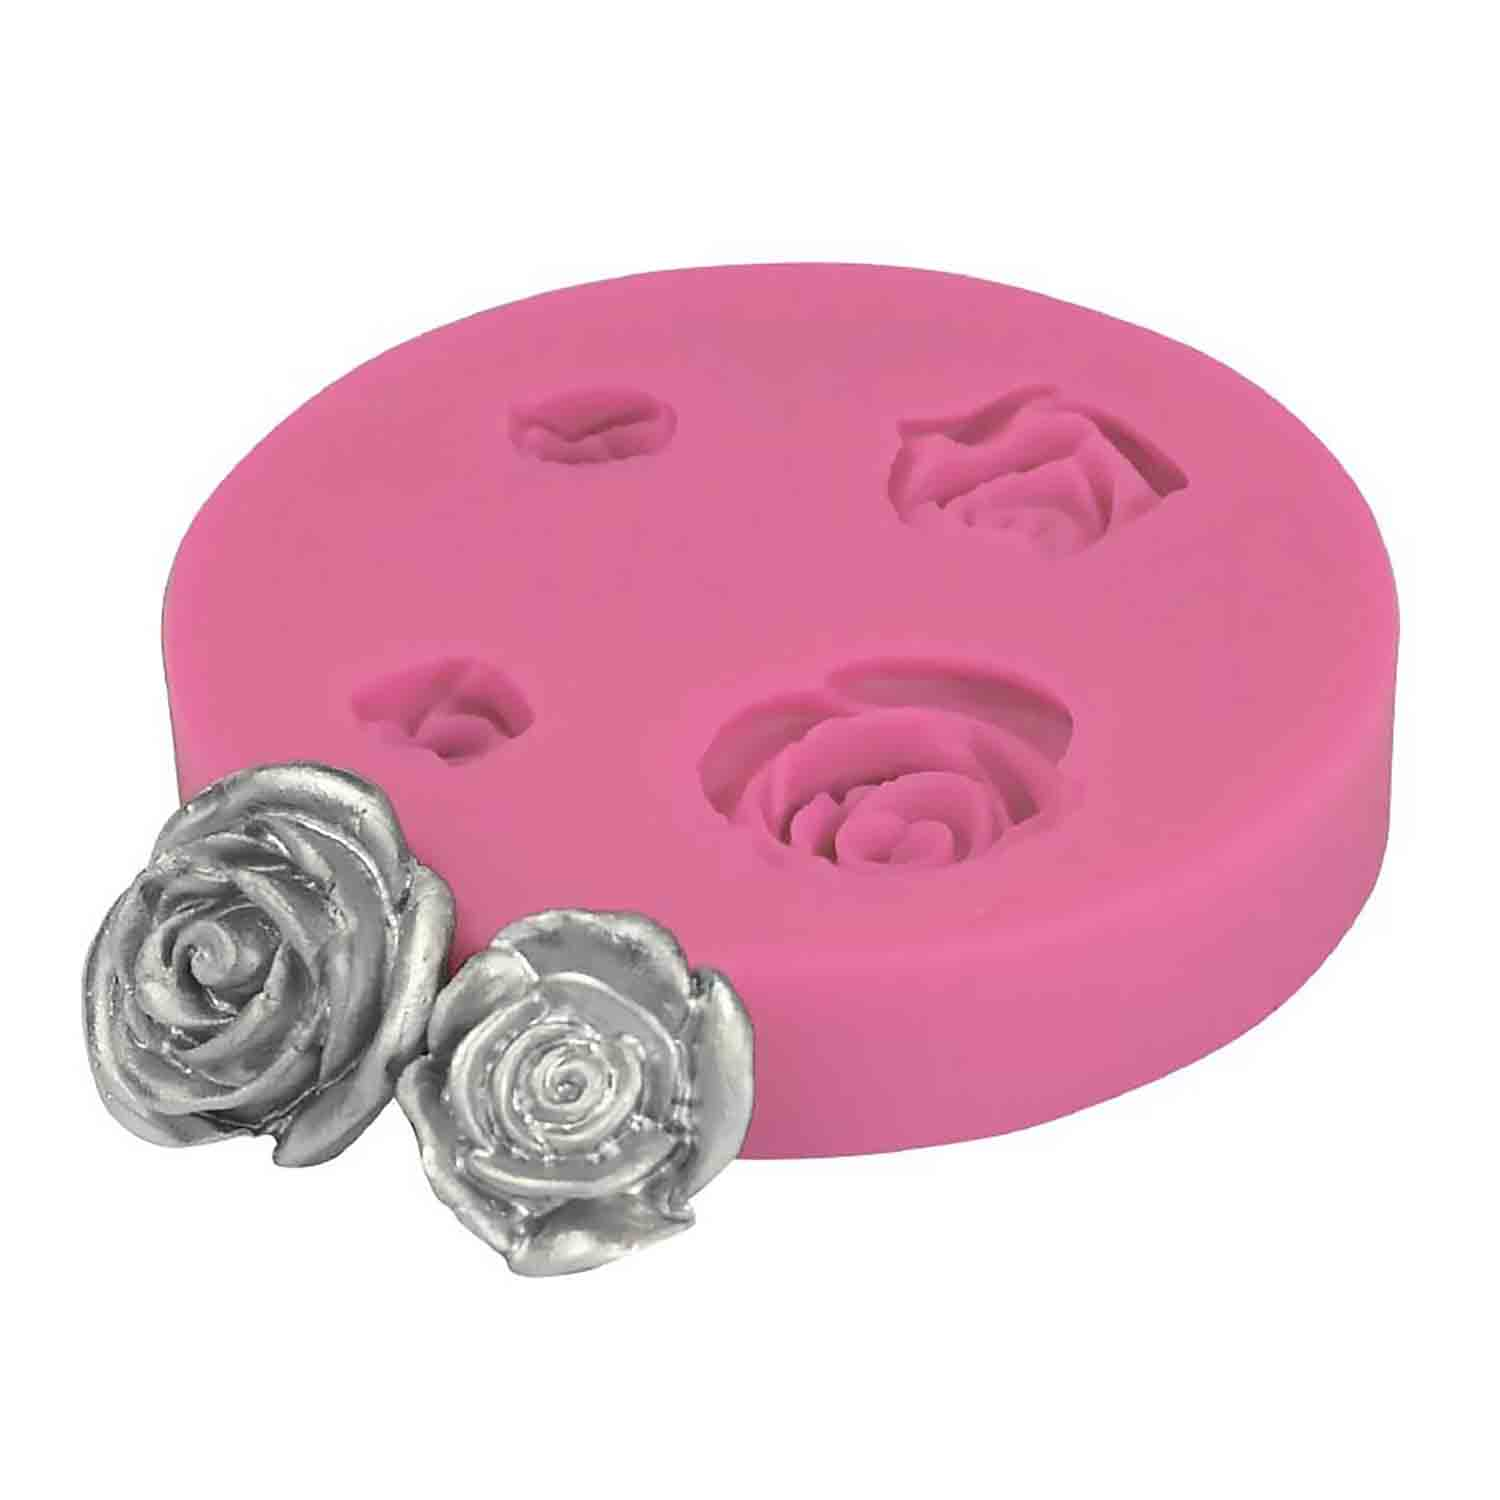 Assorted Rose Silicone Mold